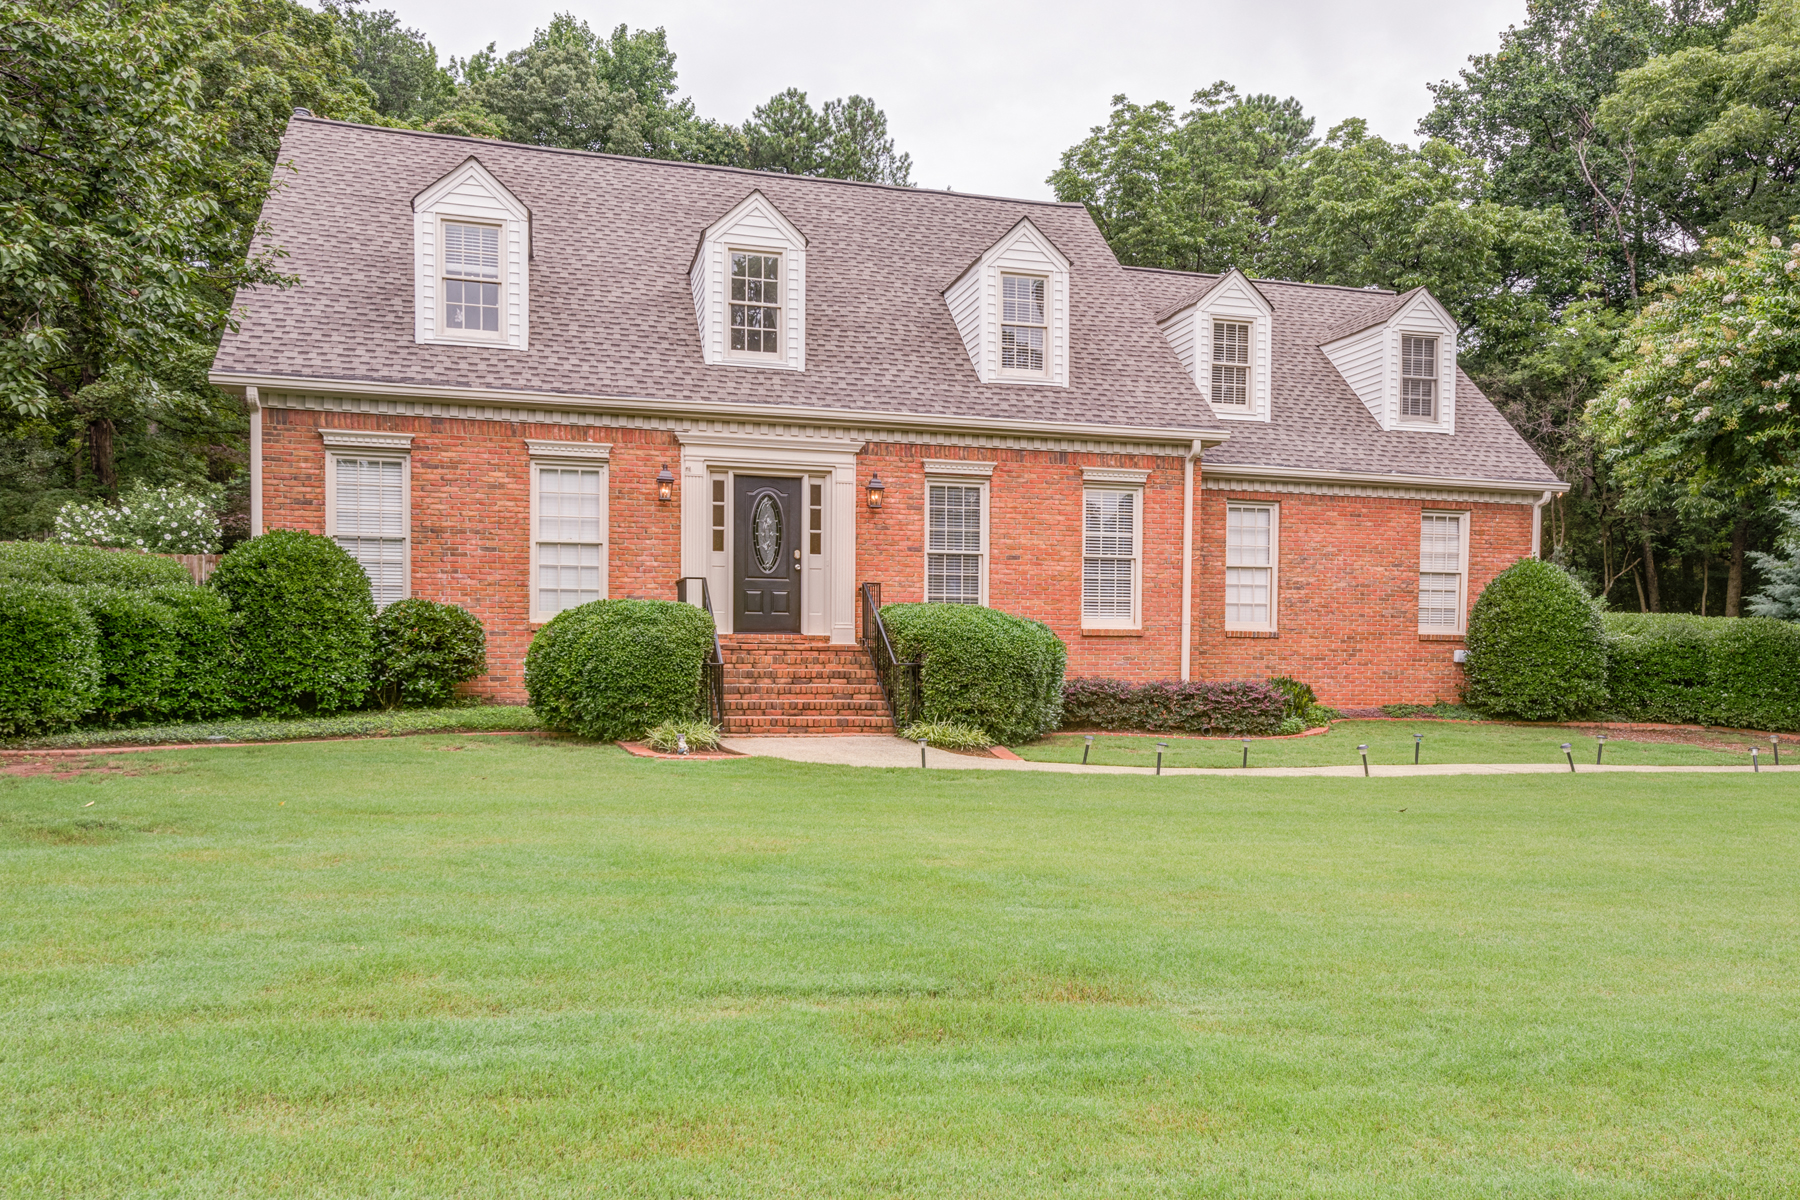 Single Family Home for Active at Exquisite Colonial 466 Park Manor Drive NW Marietta, Georgia 30064 United States